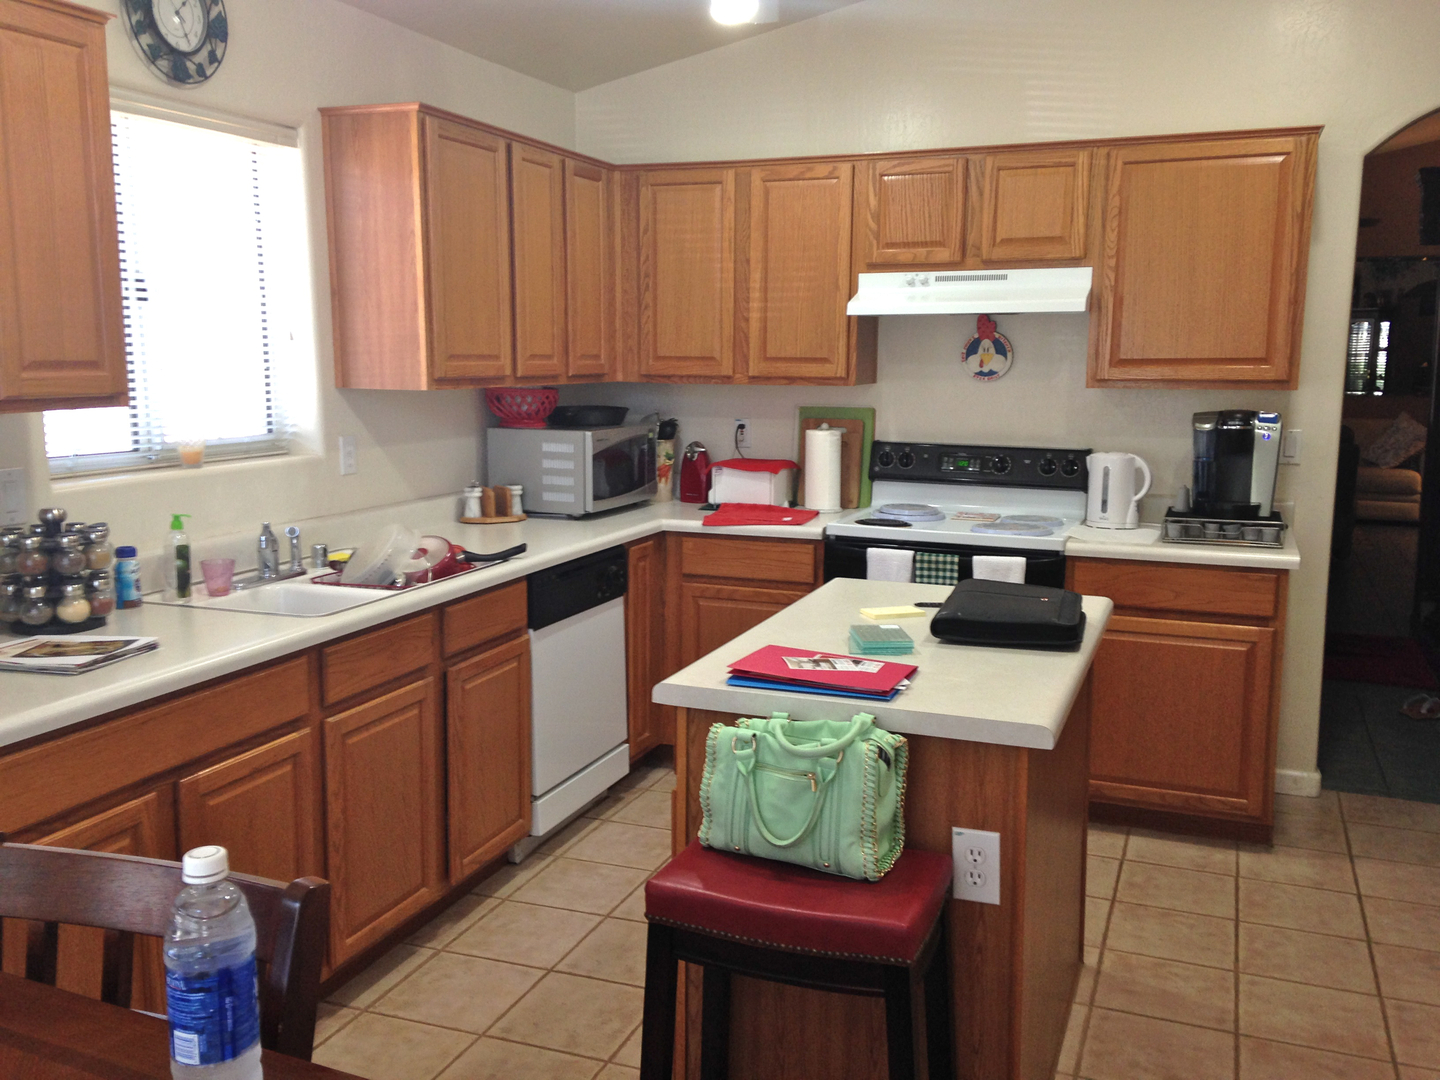 refinishing kitchen cabinets, refacing - re-new cabinets, llc